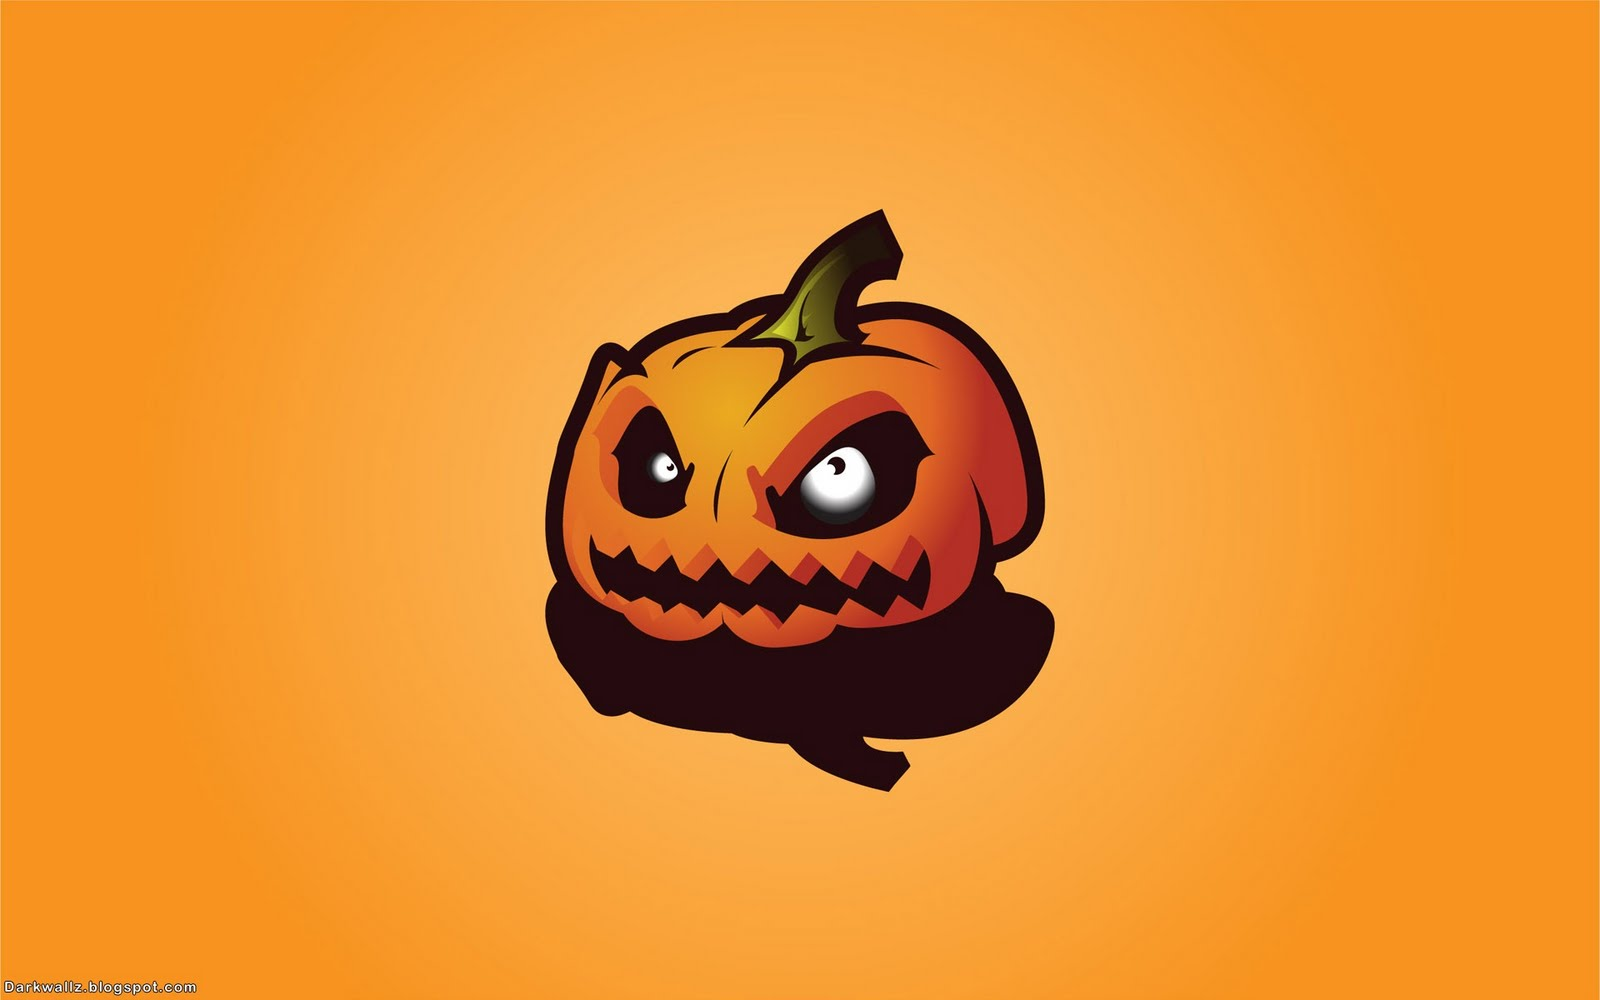 Halloween Wallpapers 01 | Dark Wallpaper Download